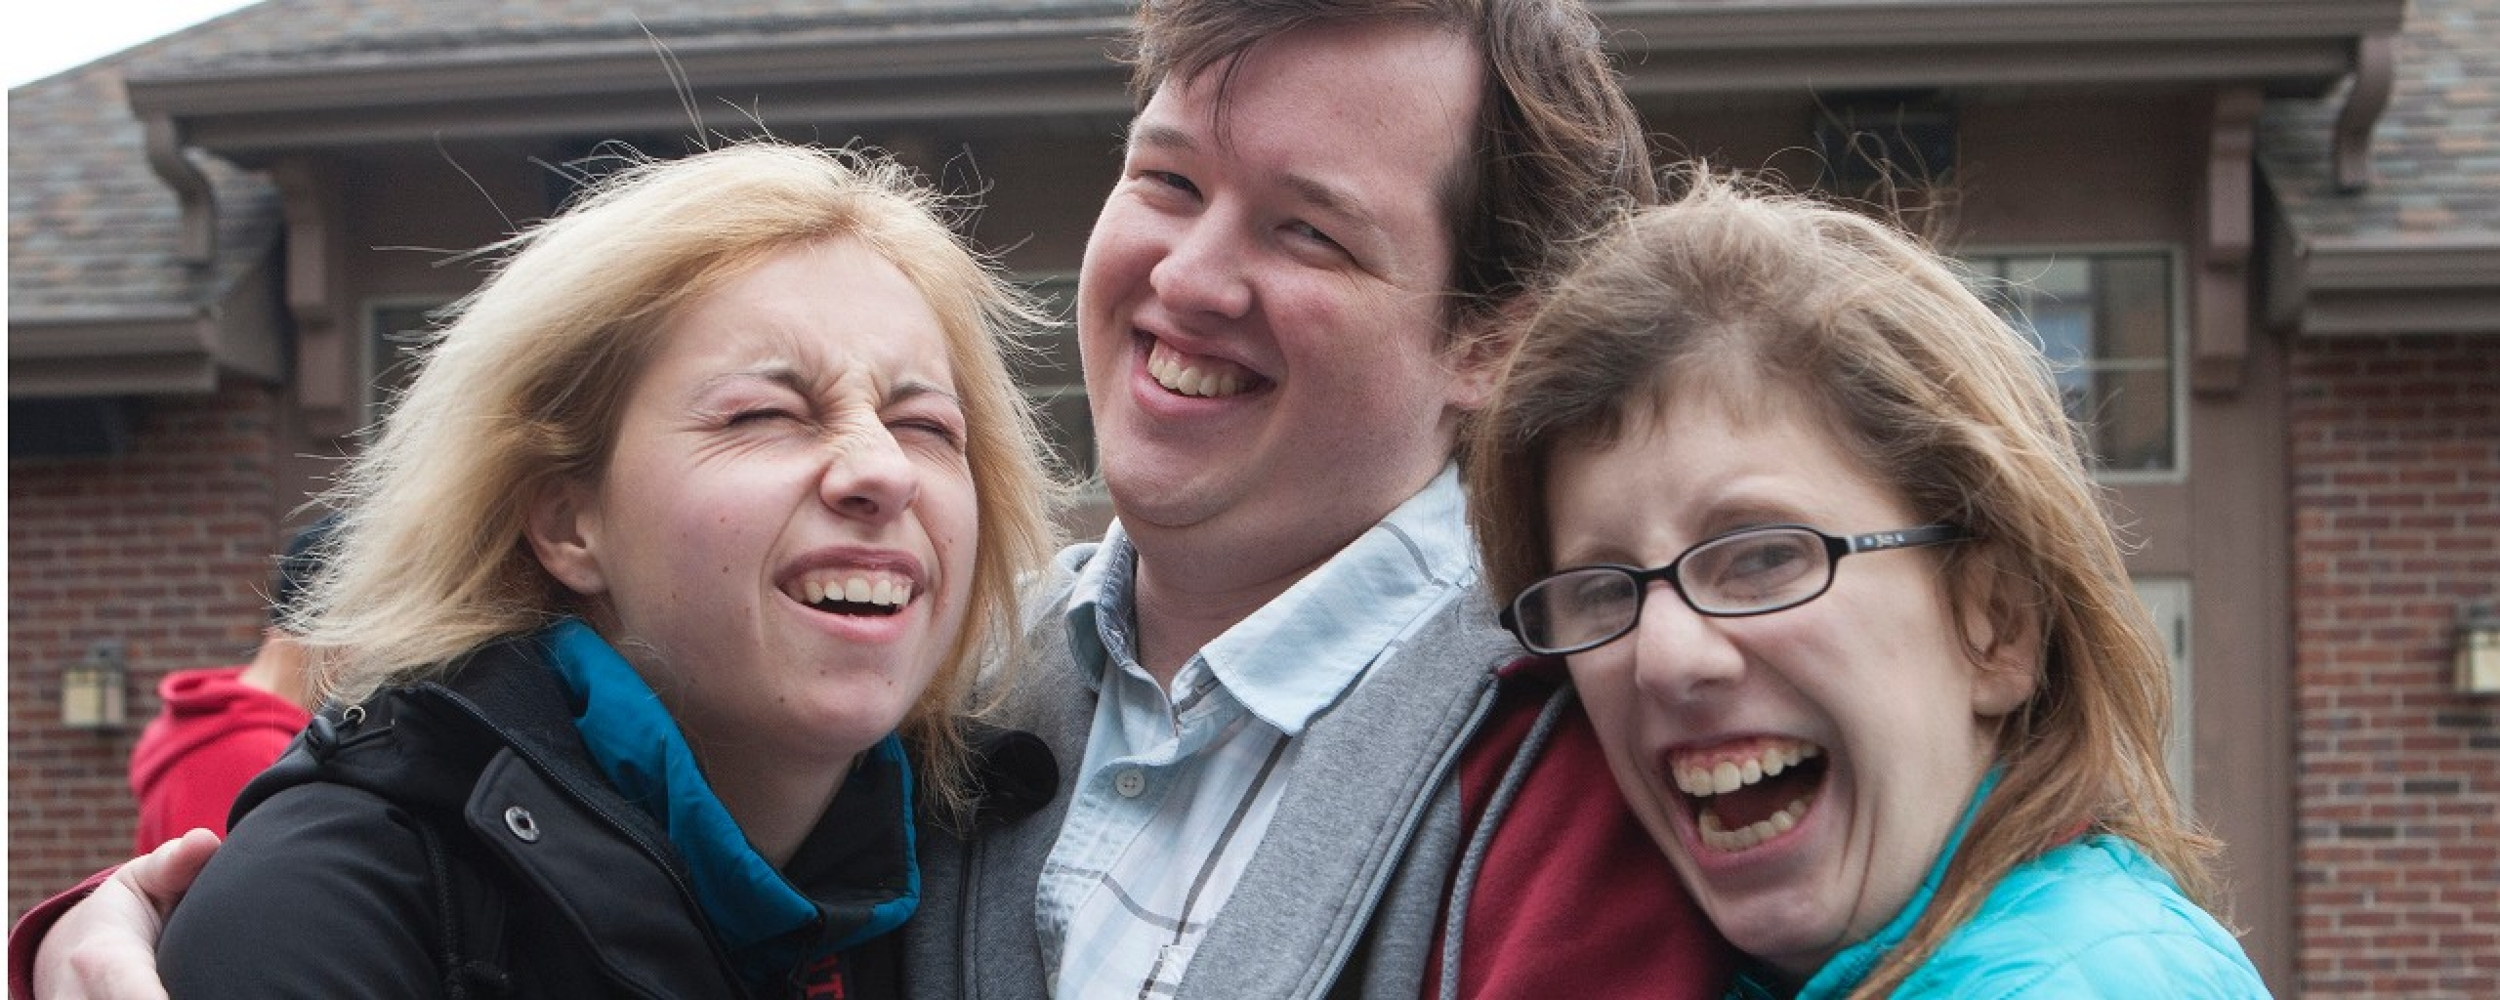 Helping People With Intellectual Disabilities In Residential Care